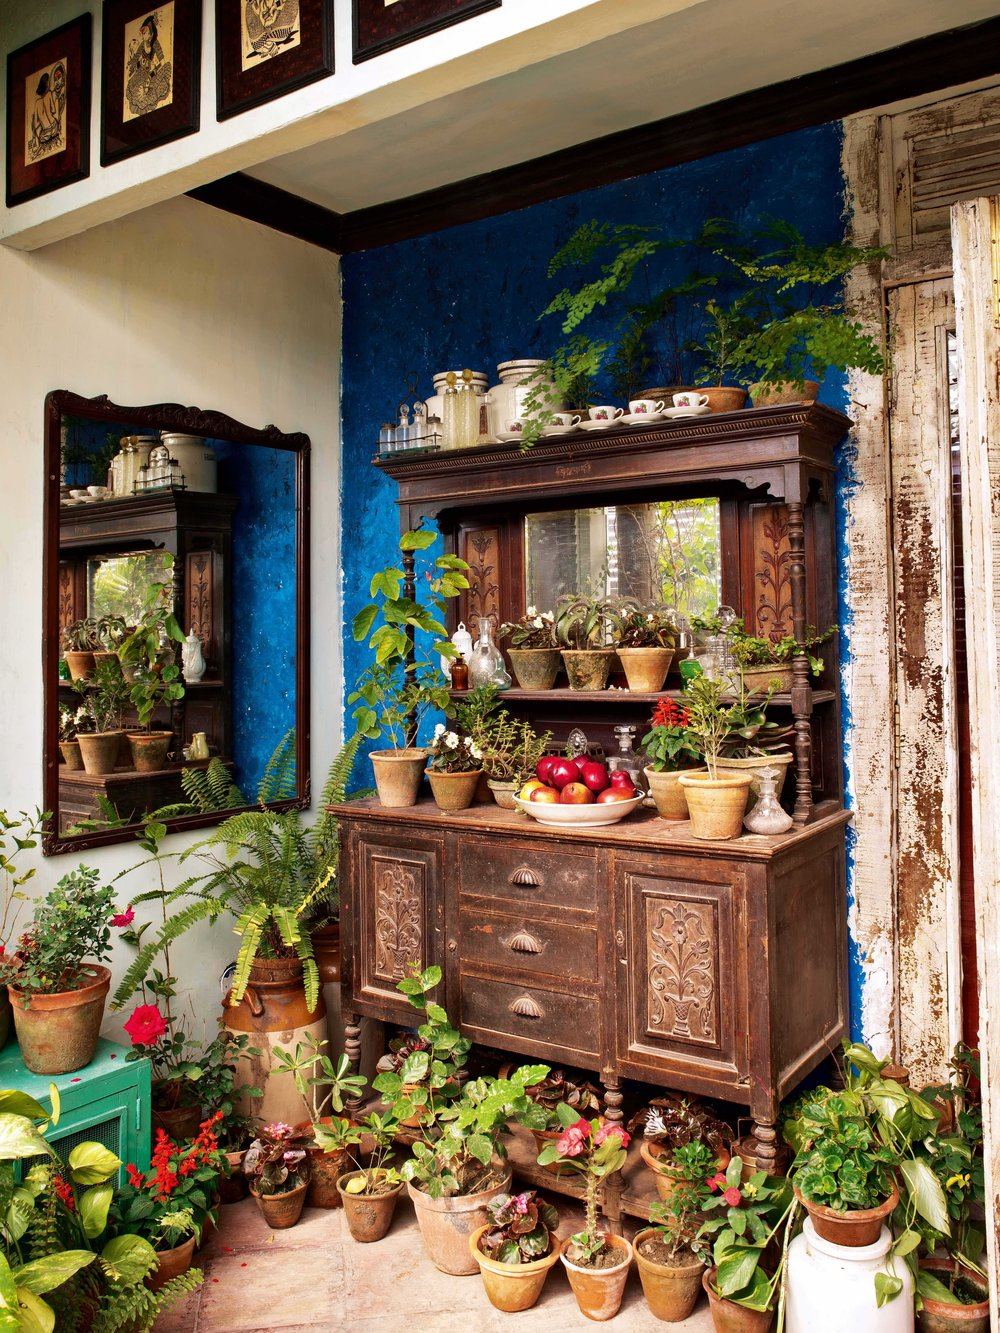 A 1960's dressing table surrounded by potted plants in the garden.